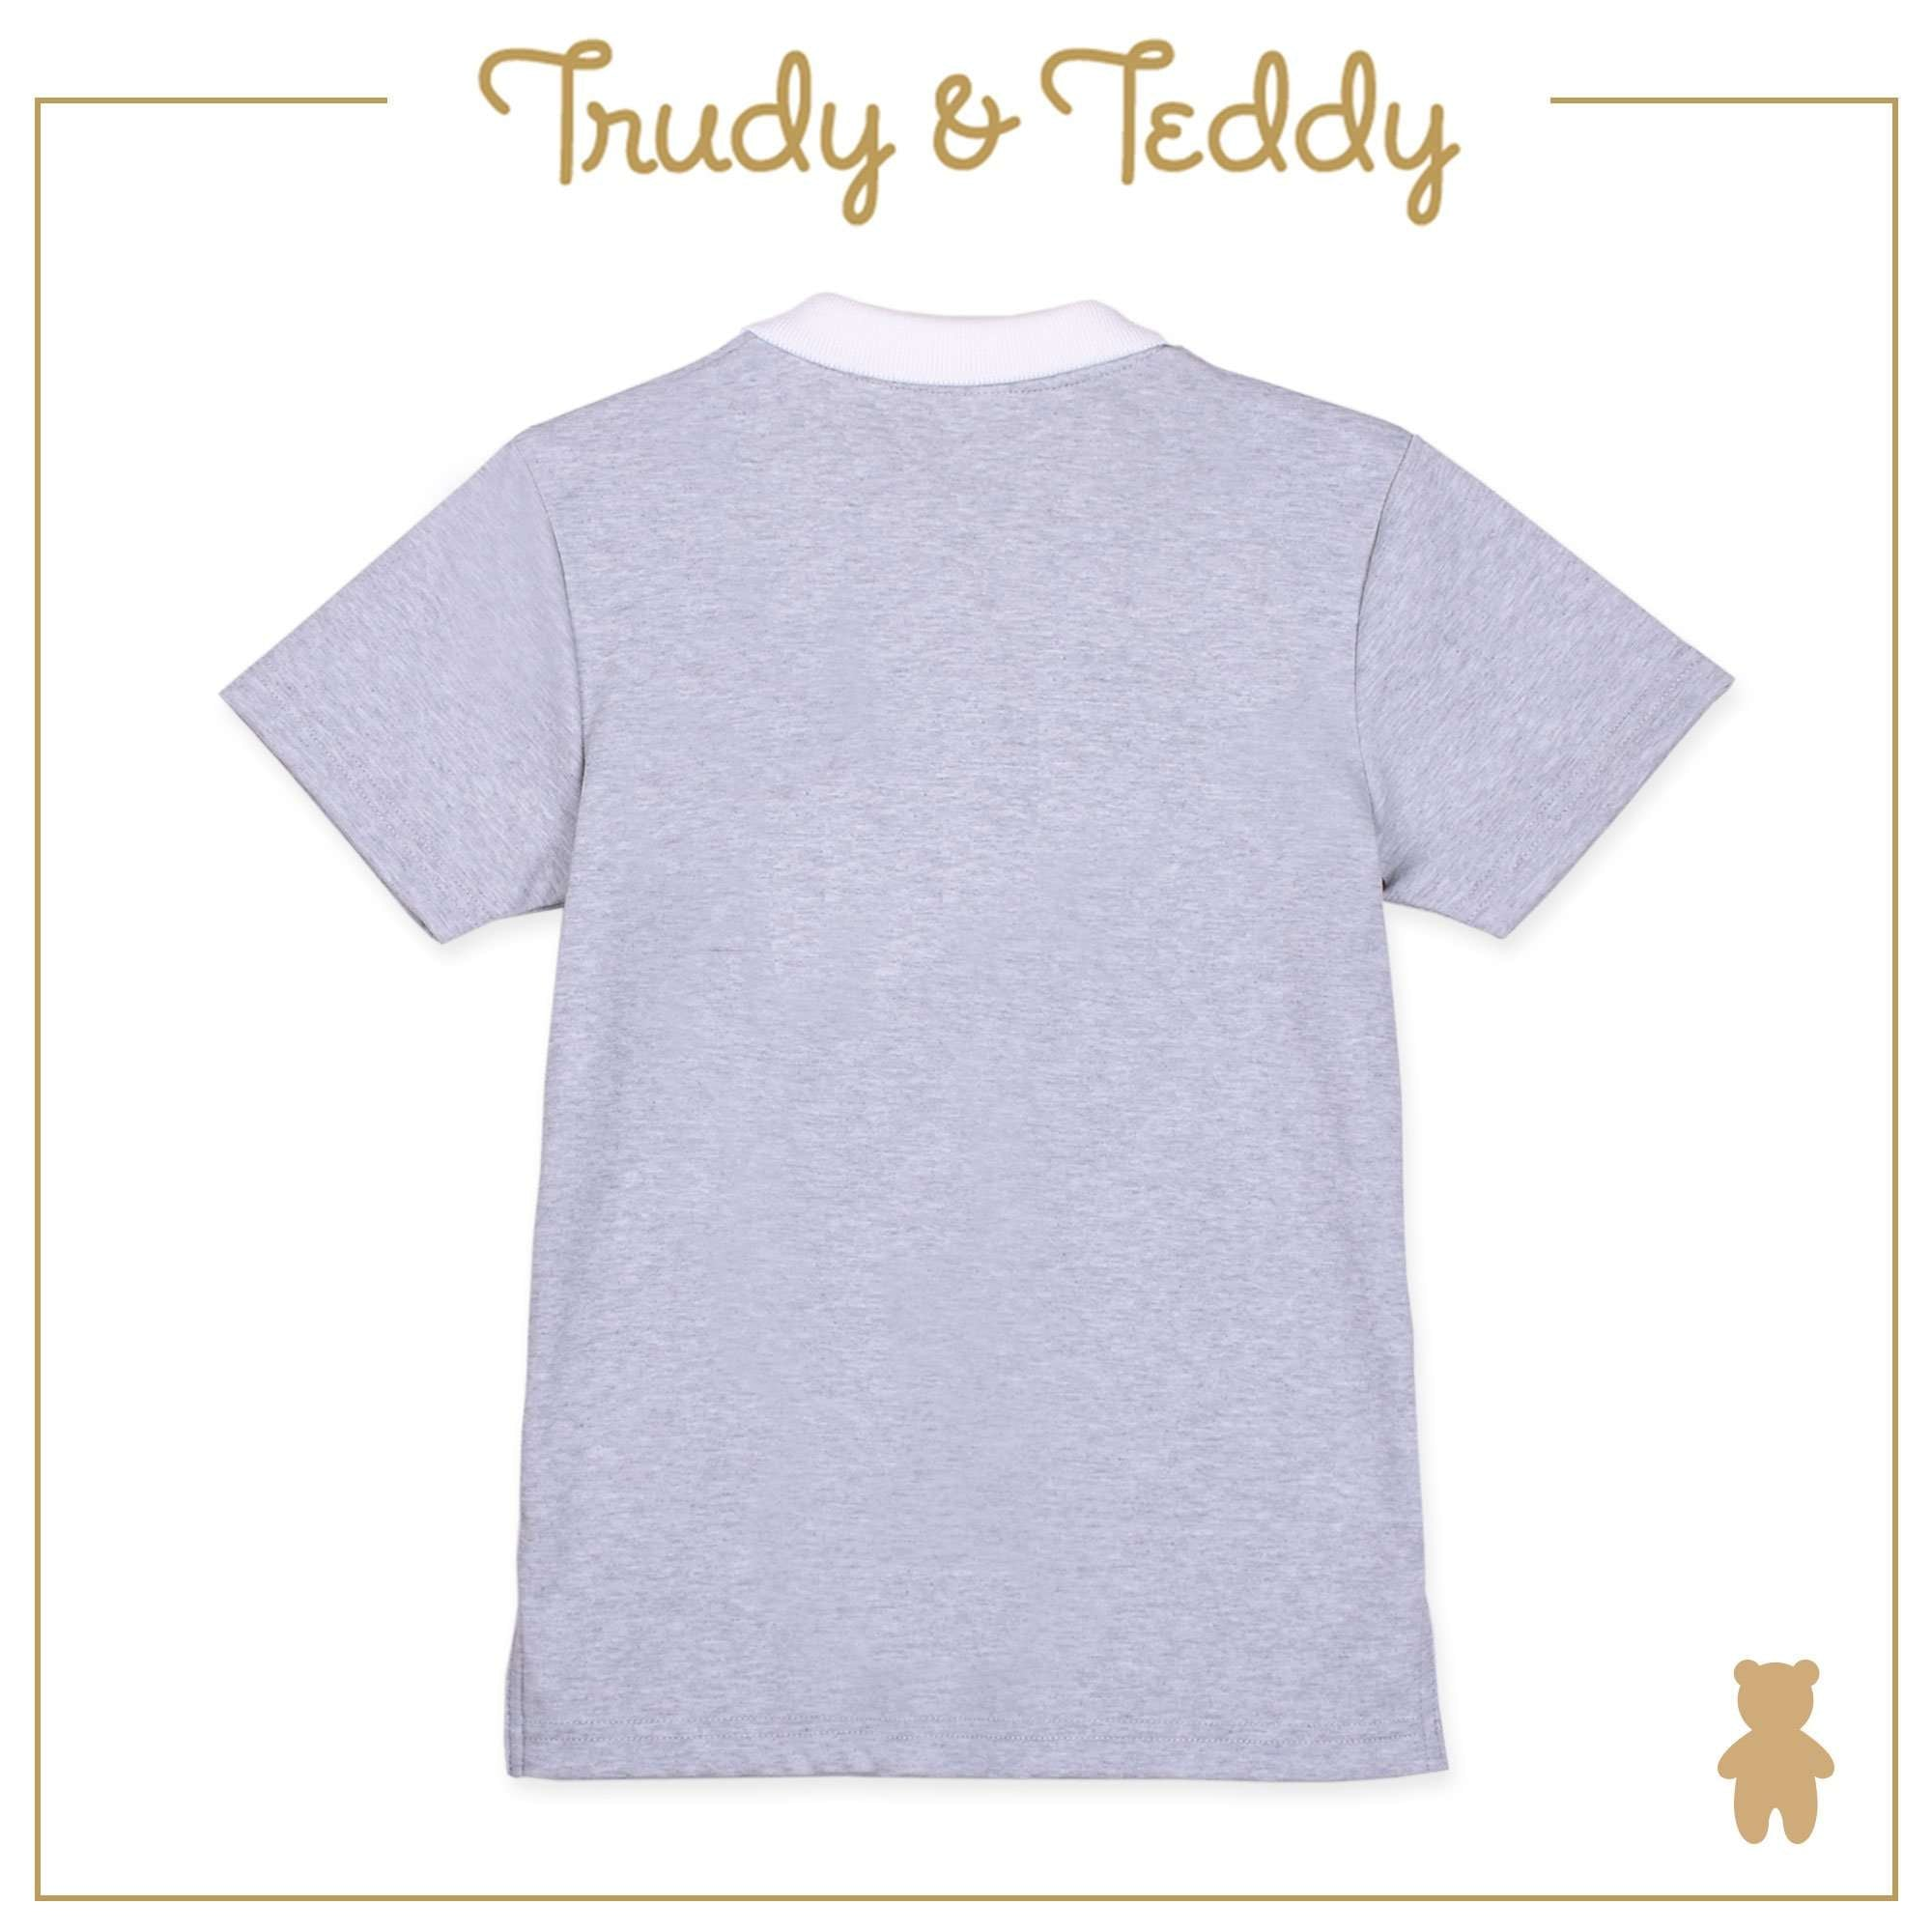 Trudy & Teddy Baby to Kid Boy Short Sleeve Collar Tee - Light Grey T912005-1205-G1 : Buy Trudy & Teddy online at CMG.MY